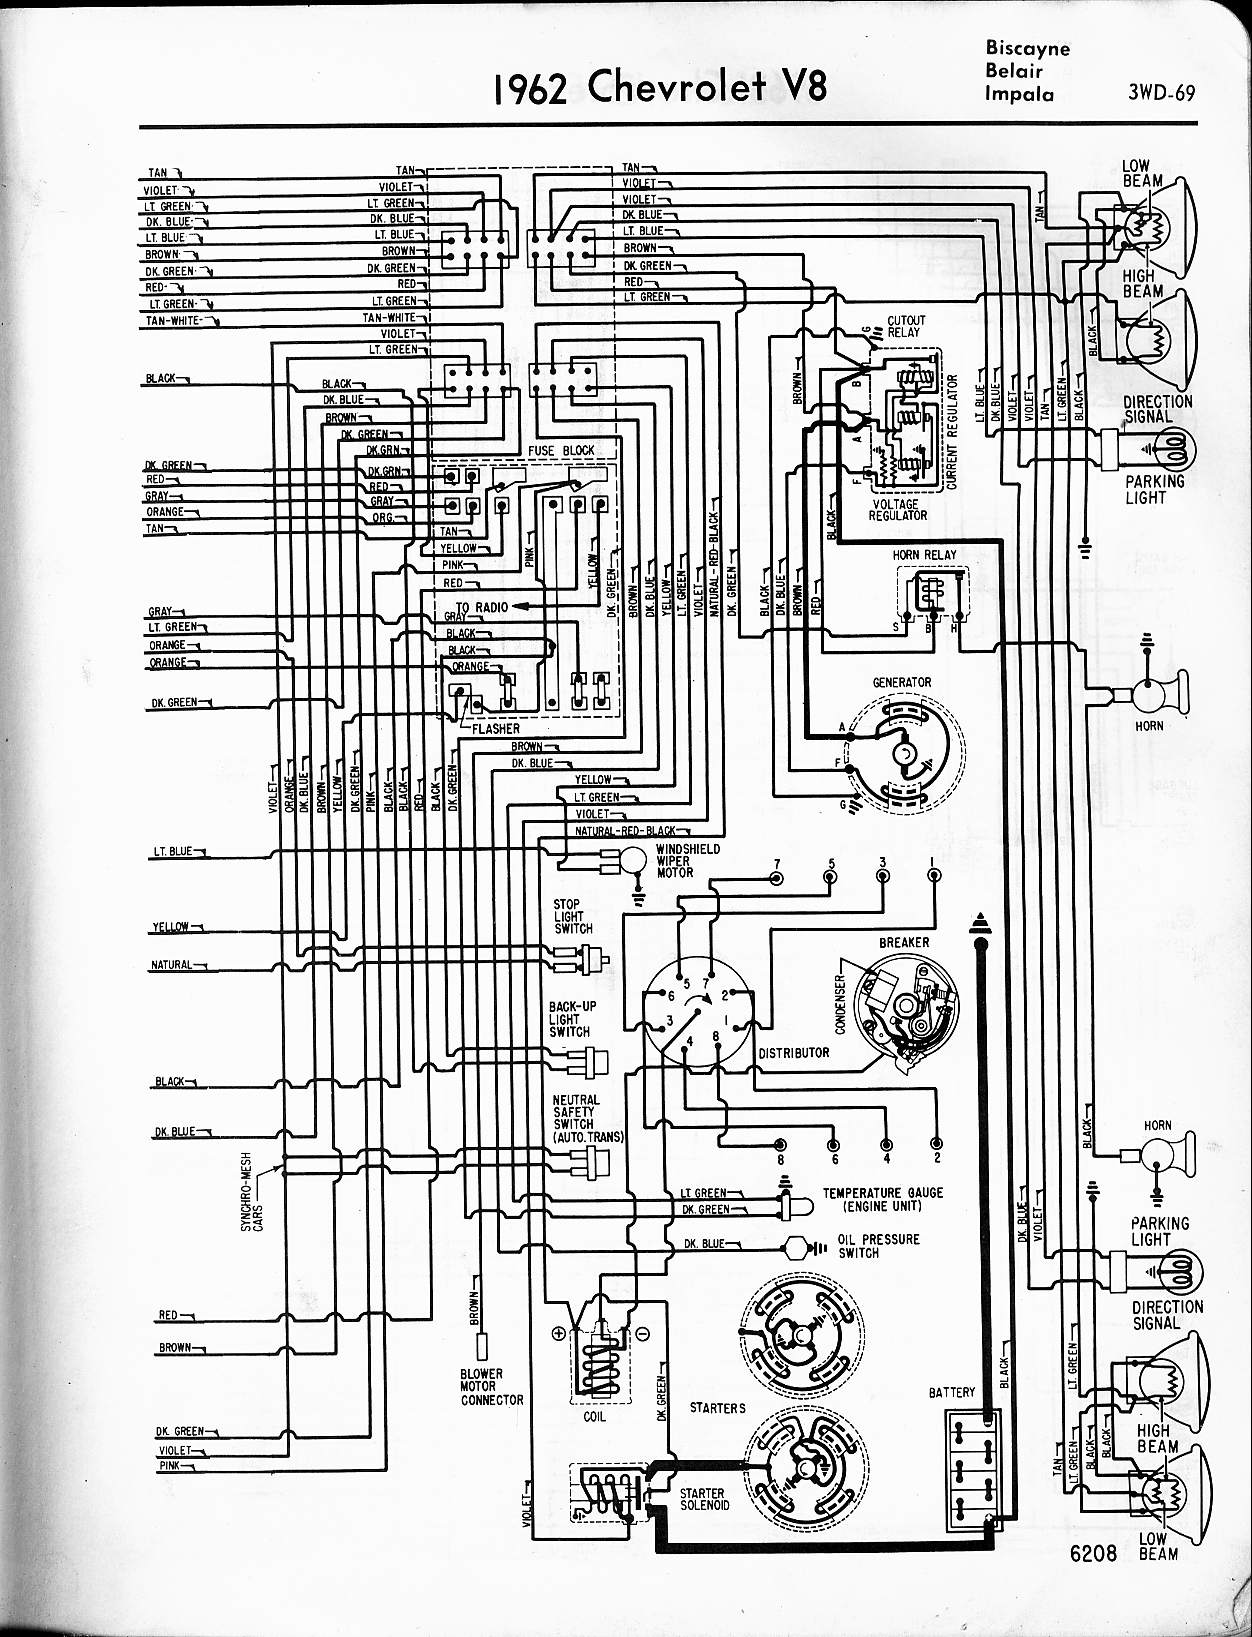 62 chevy impala wiring diagram best of wiring diagram datasheet u2022 rh geetek co